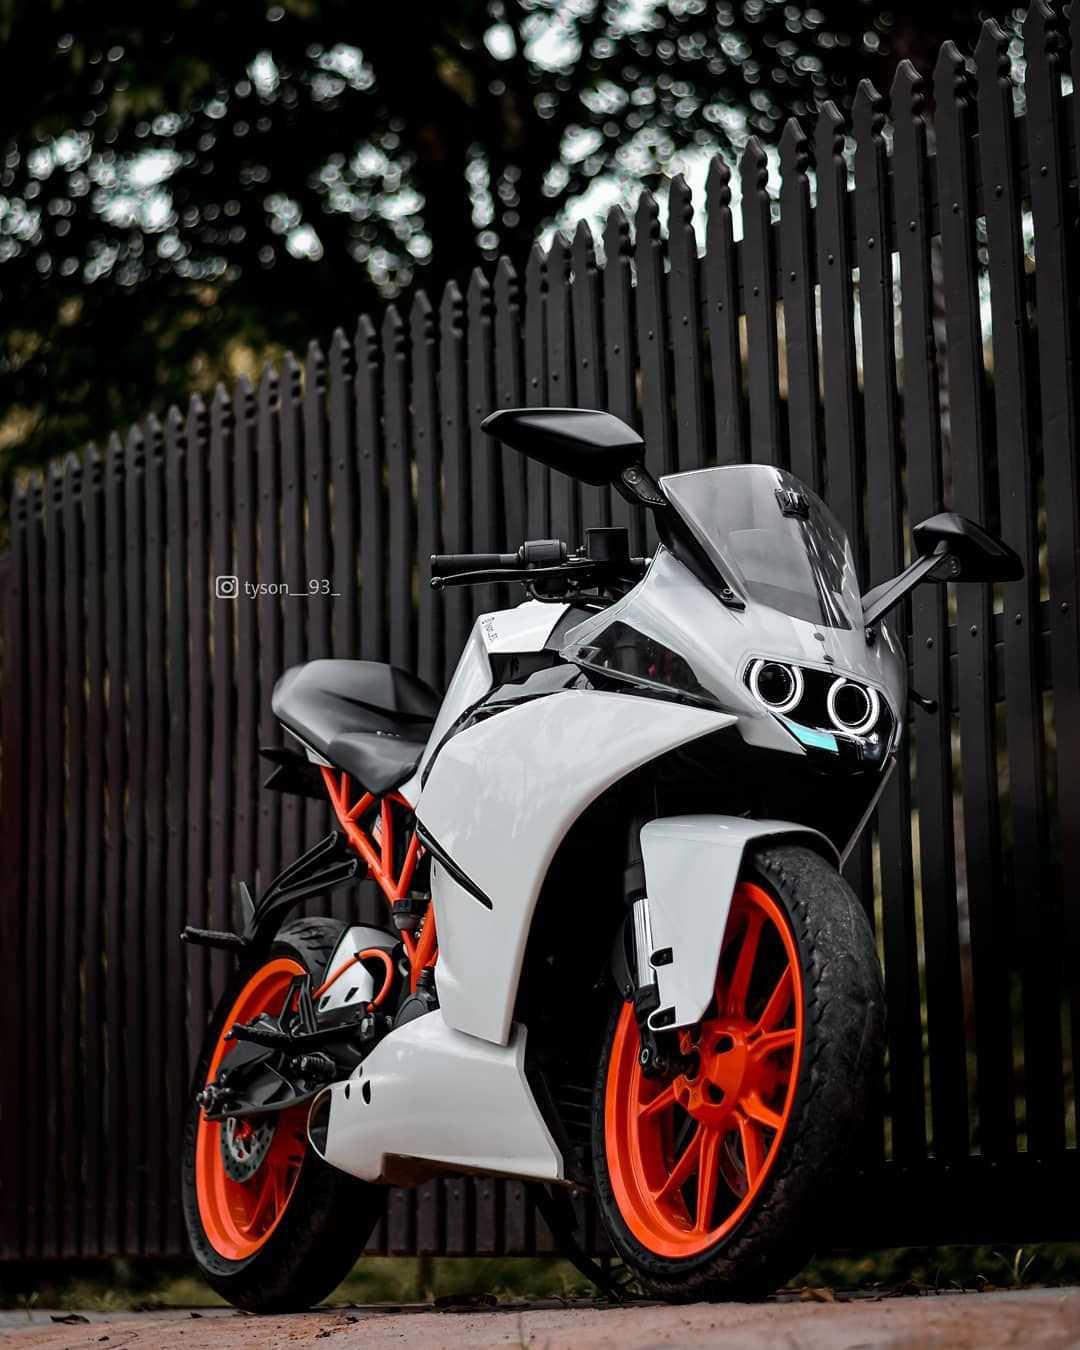 4 672 Likes 122 Comments Ktm Biker Boy Tyson 93 On Instagram White Beauty Follow Tyson 93 Stay Tuned For More Ktm Rc Ktm Ktm Rc 200 Download ktm rc modified wallpaper